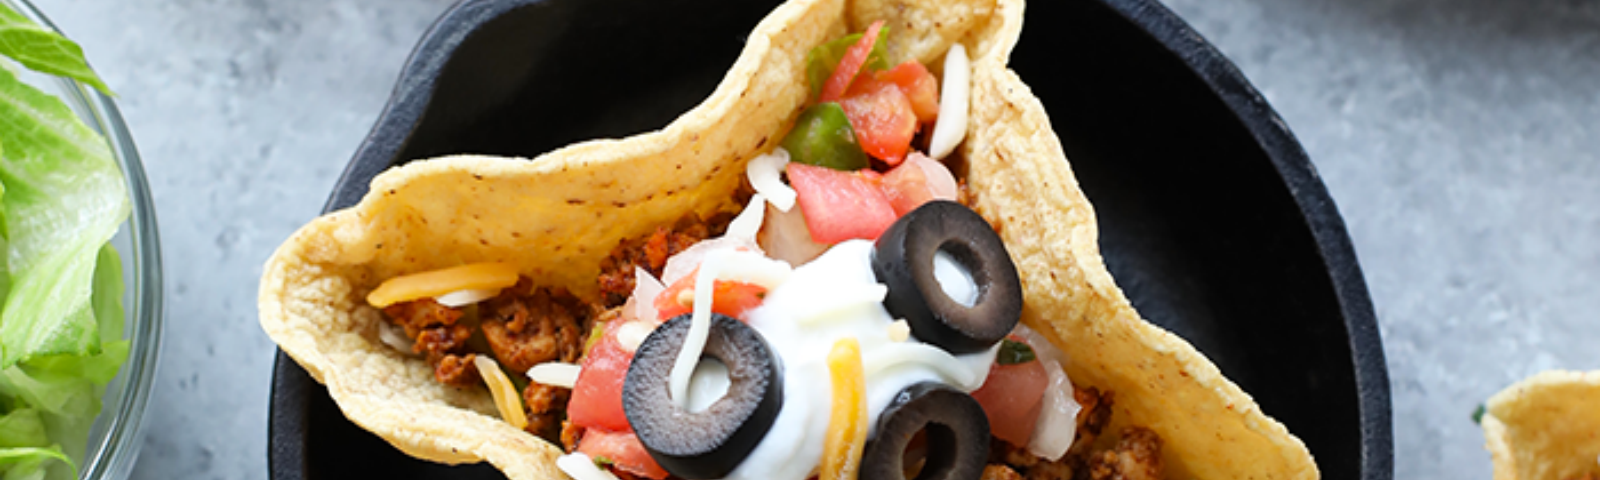 Taco Tuesday just got a whole lot cuter! Get the whole family involved and make these adorable mini taco cups made with homemade hard taco boats!